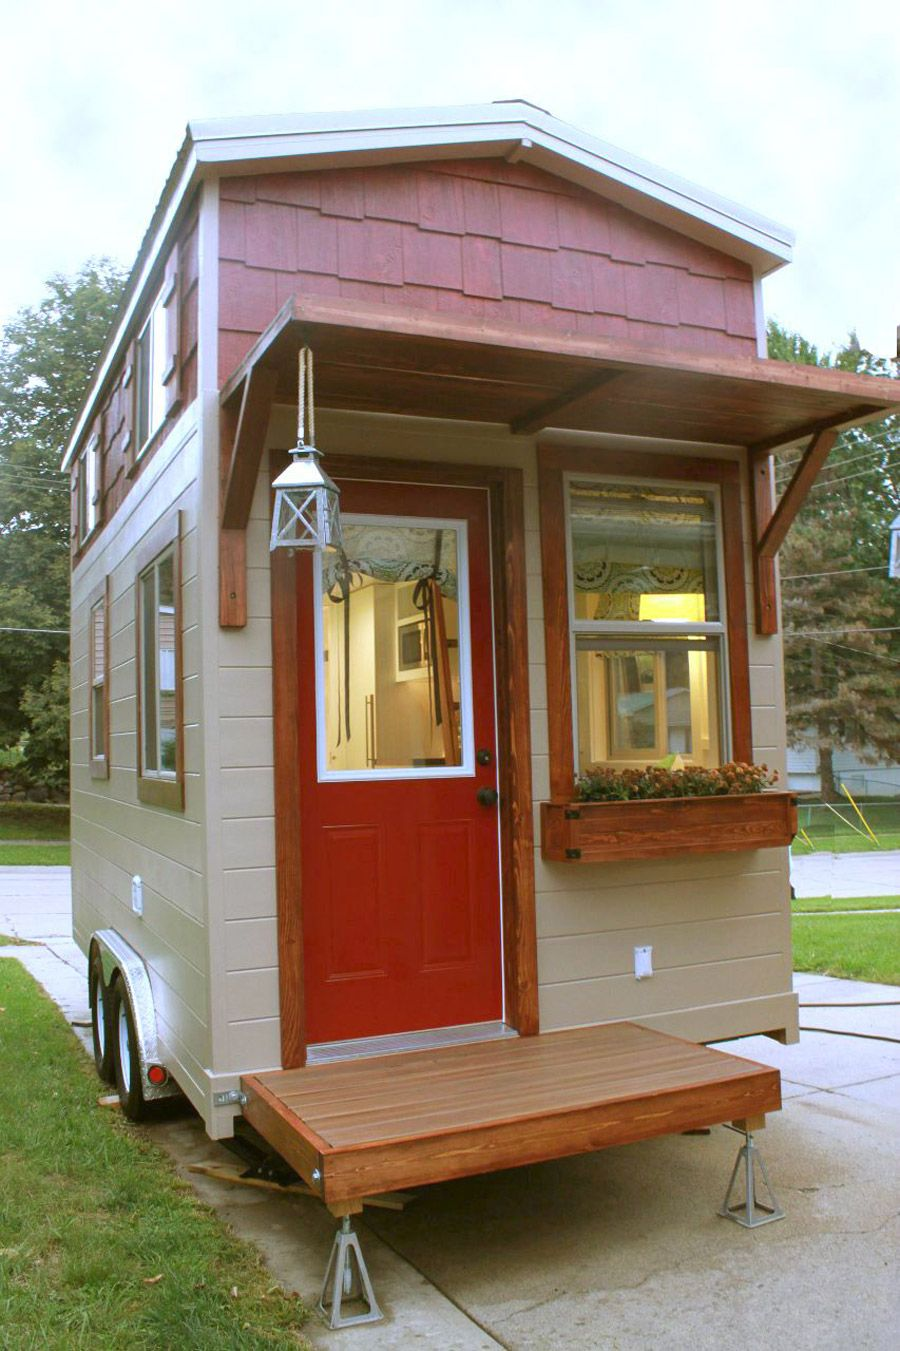 Tiny houses on trailers for sale - A 180 Square Feet Lofted Tiny House On Wheels In Omaha Nebraska Designed And